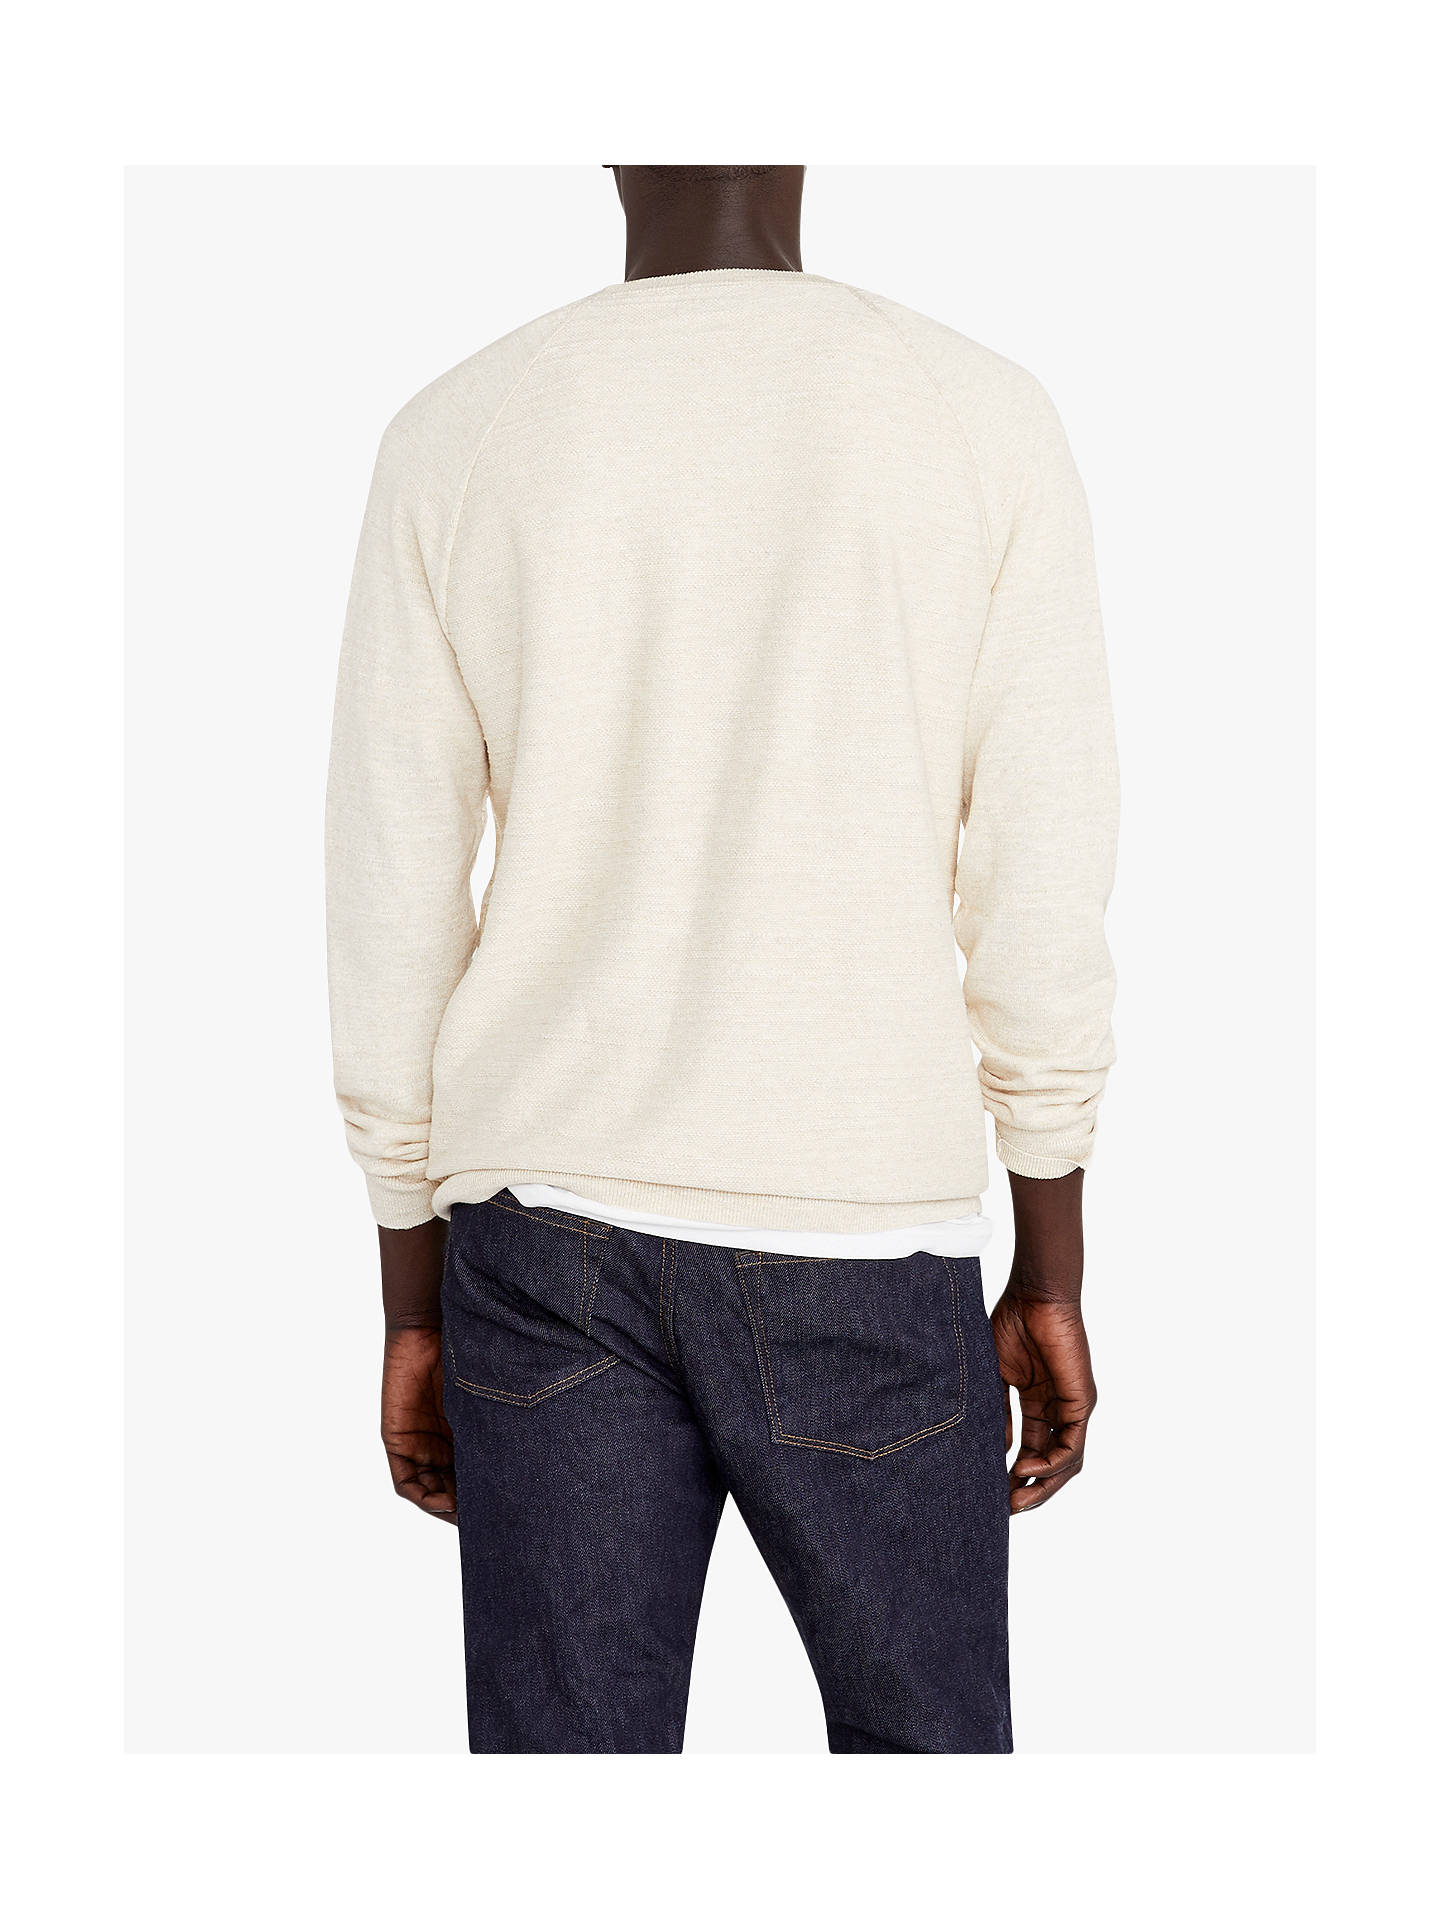 BuyJ.Crew Uneven Budding Crew Neck Jumper, Heather Ivory, S Online at johnlewis.com